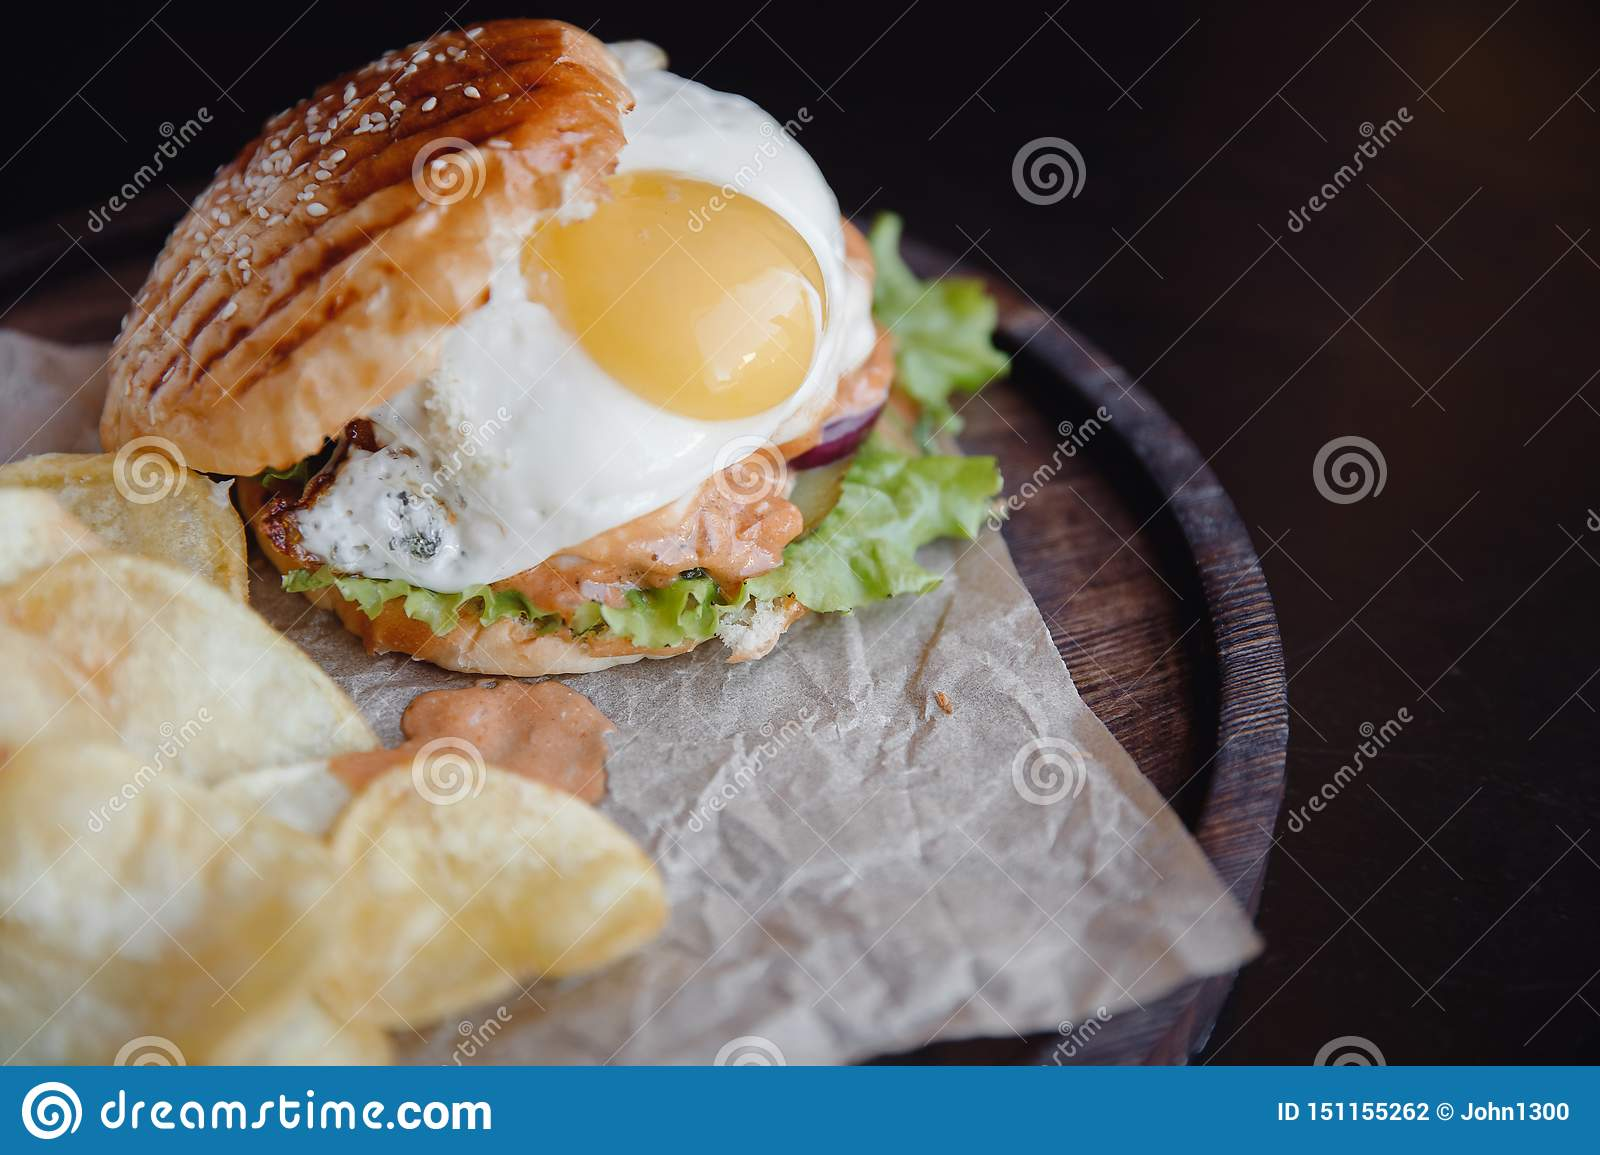 Appetizing Burger With Fried Egg Meat Patty Grilled Bun Near Potato Chips Concept Fast Food Stock Photo Image Of Board Cheeseburger 151155262